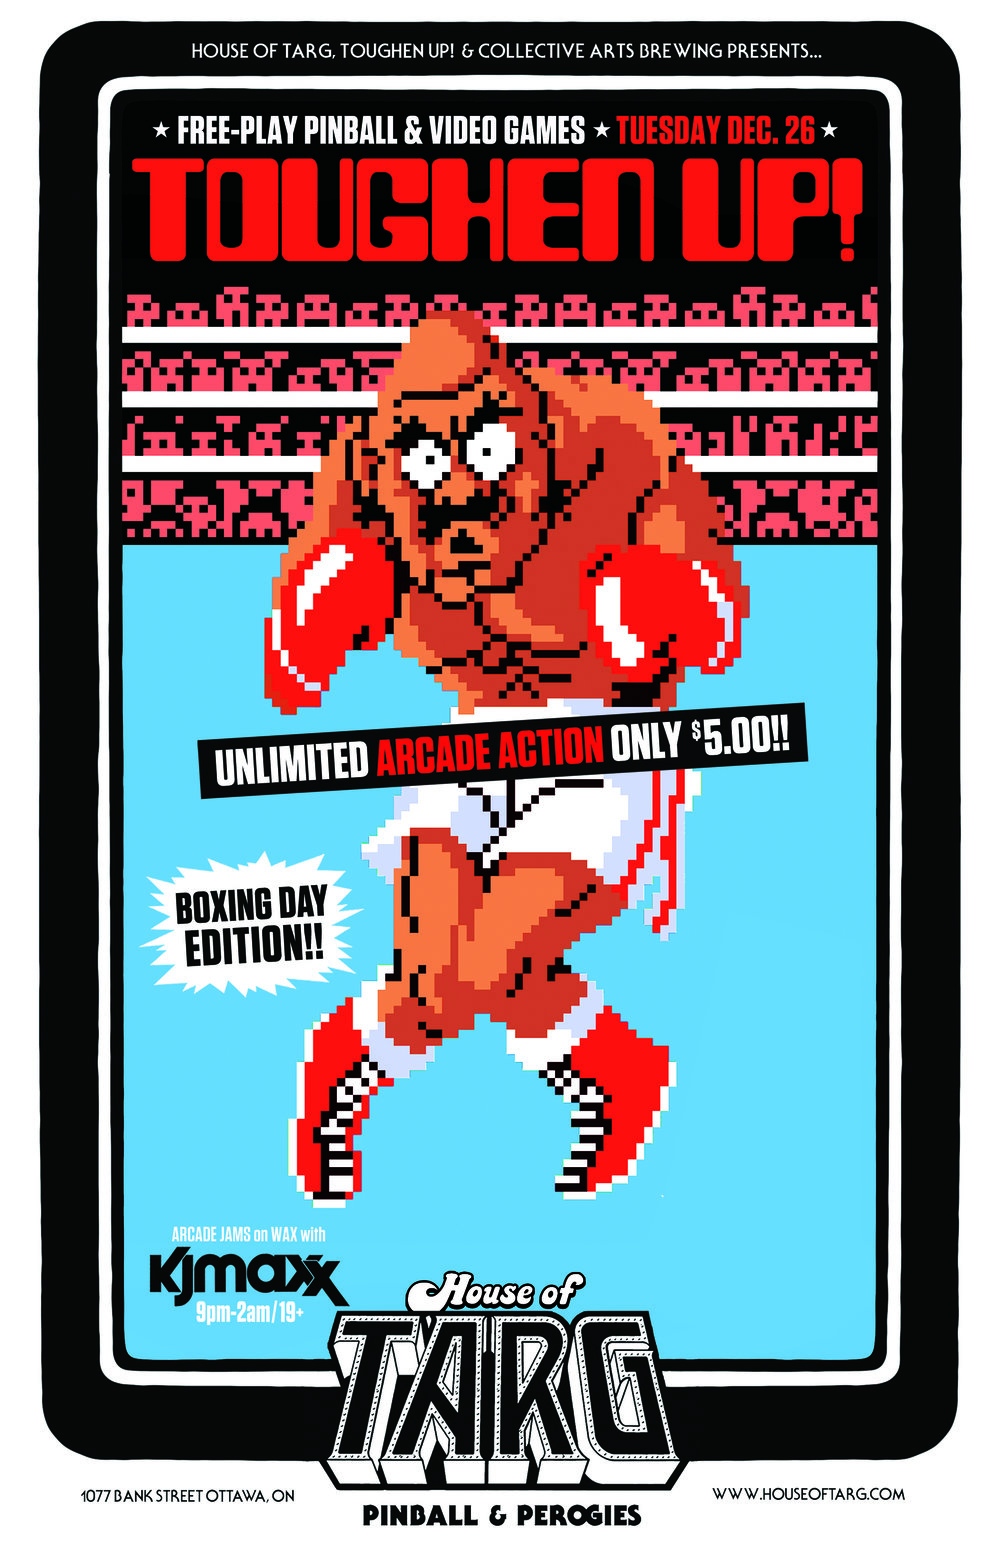 Tue Dec 26   FREE-PLAY   BOXING DAY   A Knockout evening with DJ KJMAXX at this special edition of TOUGHEN UP!. All The arcade action you can handle for just $5. Punchout Challenge on the big screen.  more details